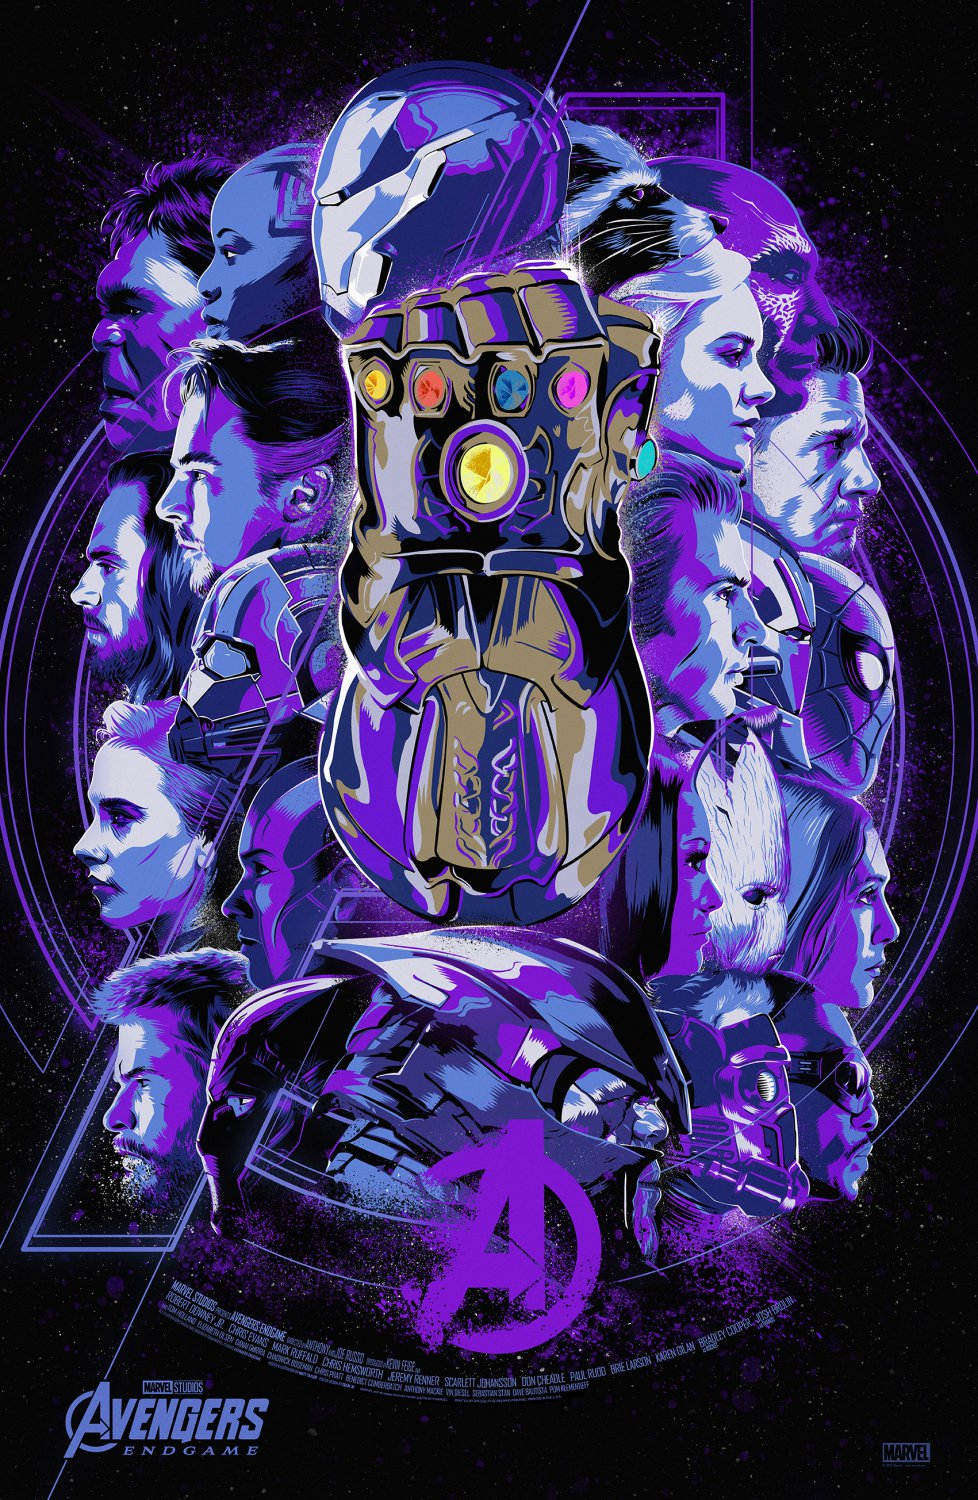 Avengers Endgame  Poster 24x36 inches